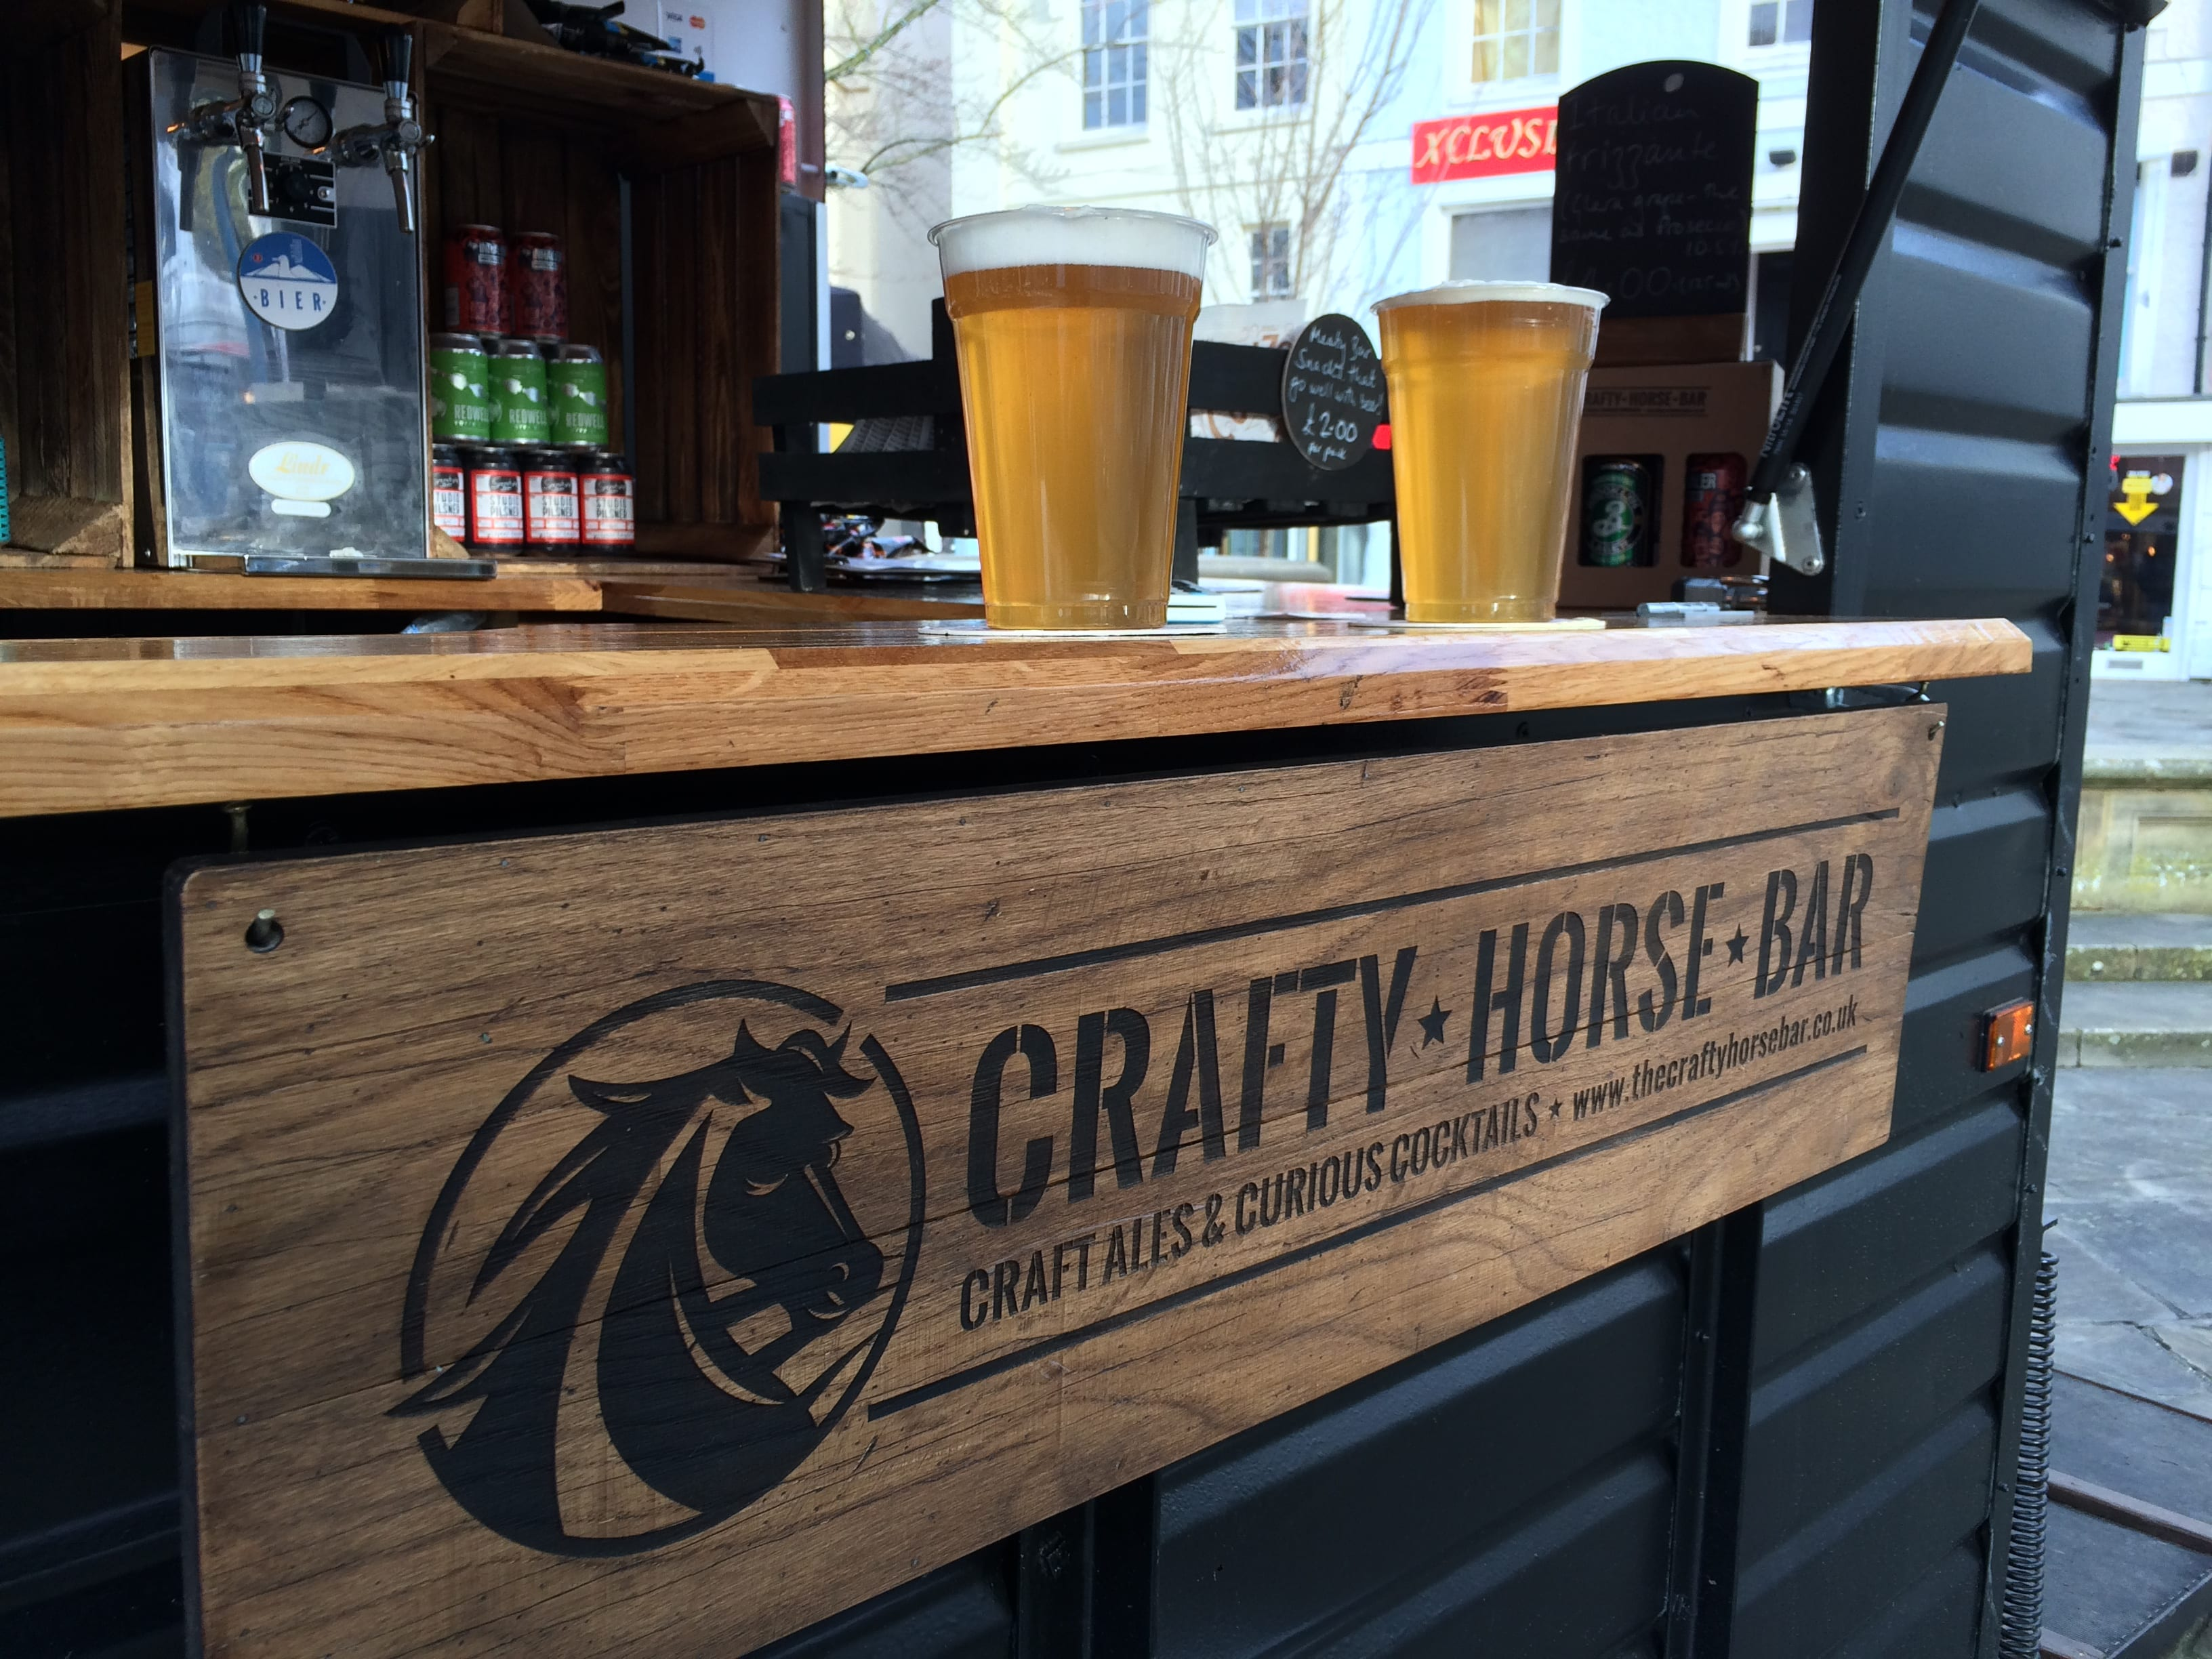 Brighton - Crafty Horse Bar